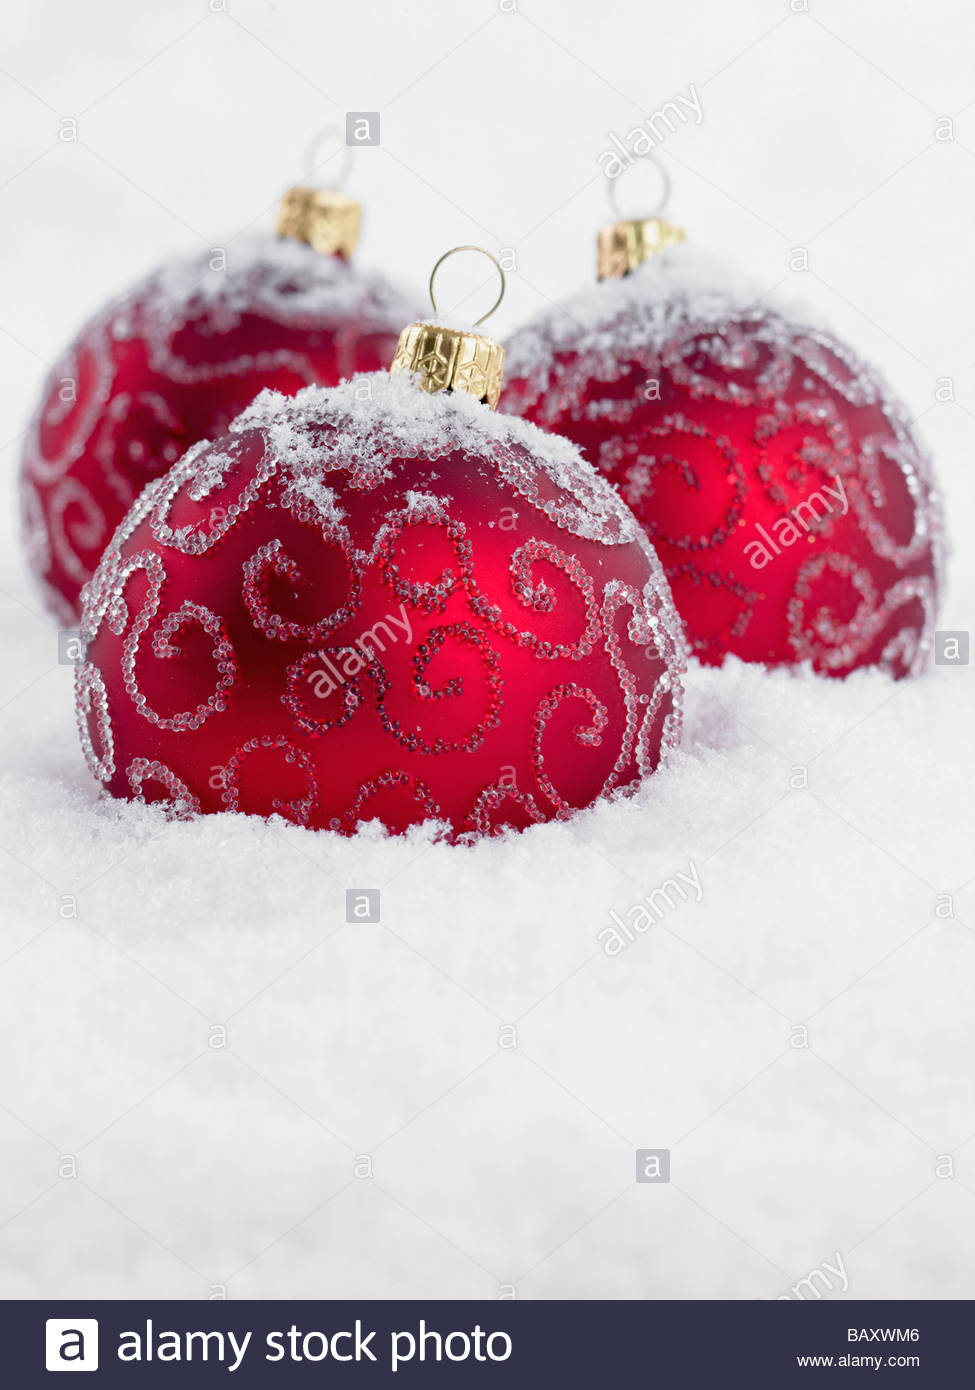 Close up of red Christmas ornaments in snow - Stock Image